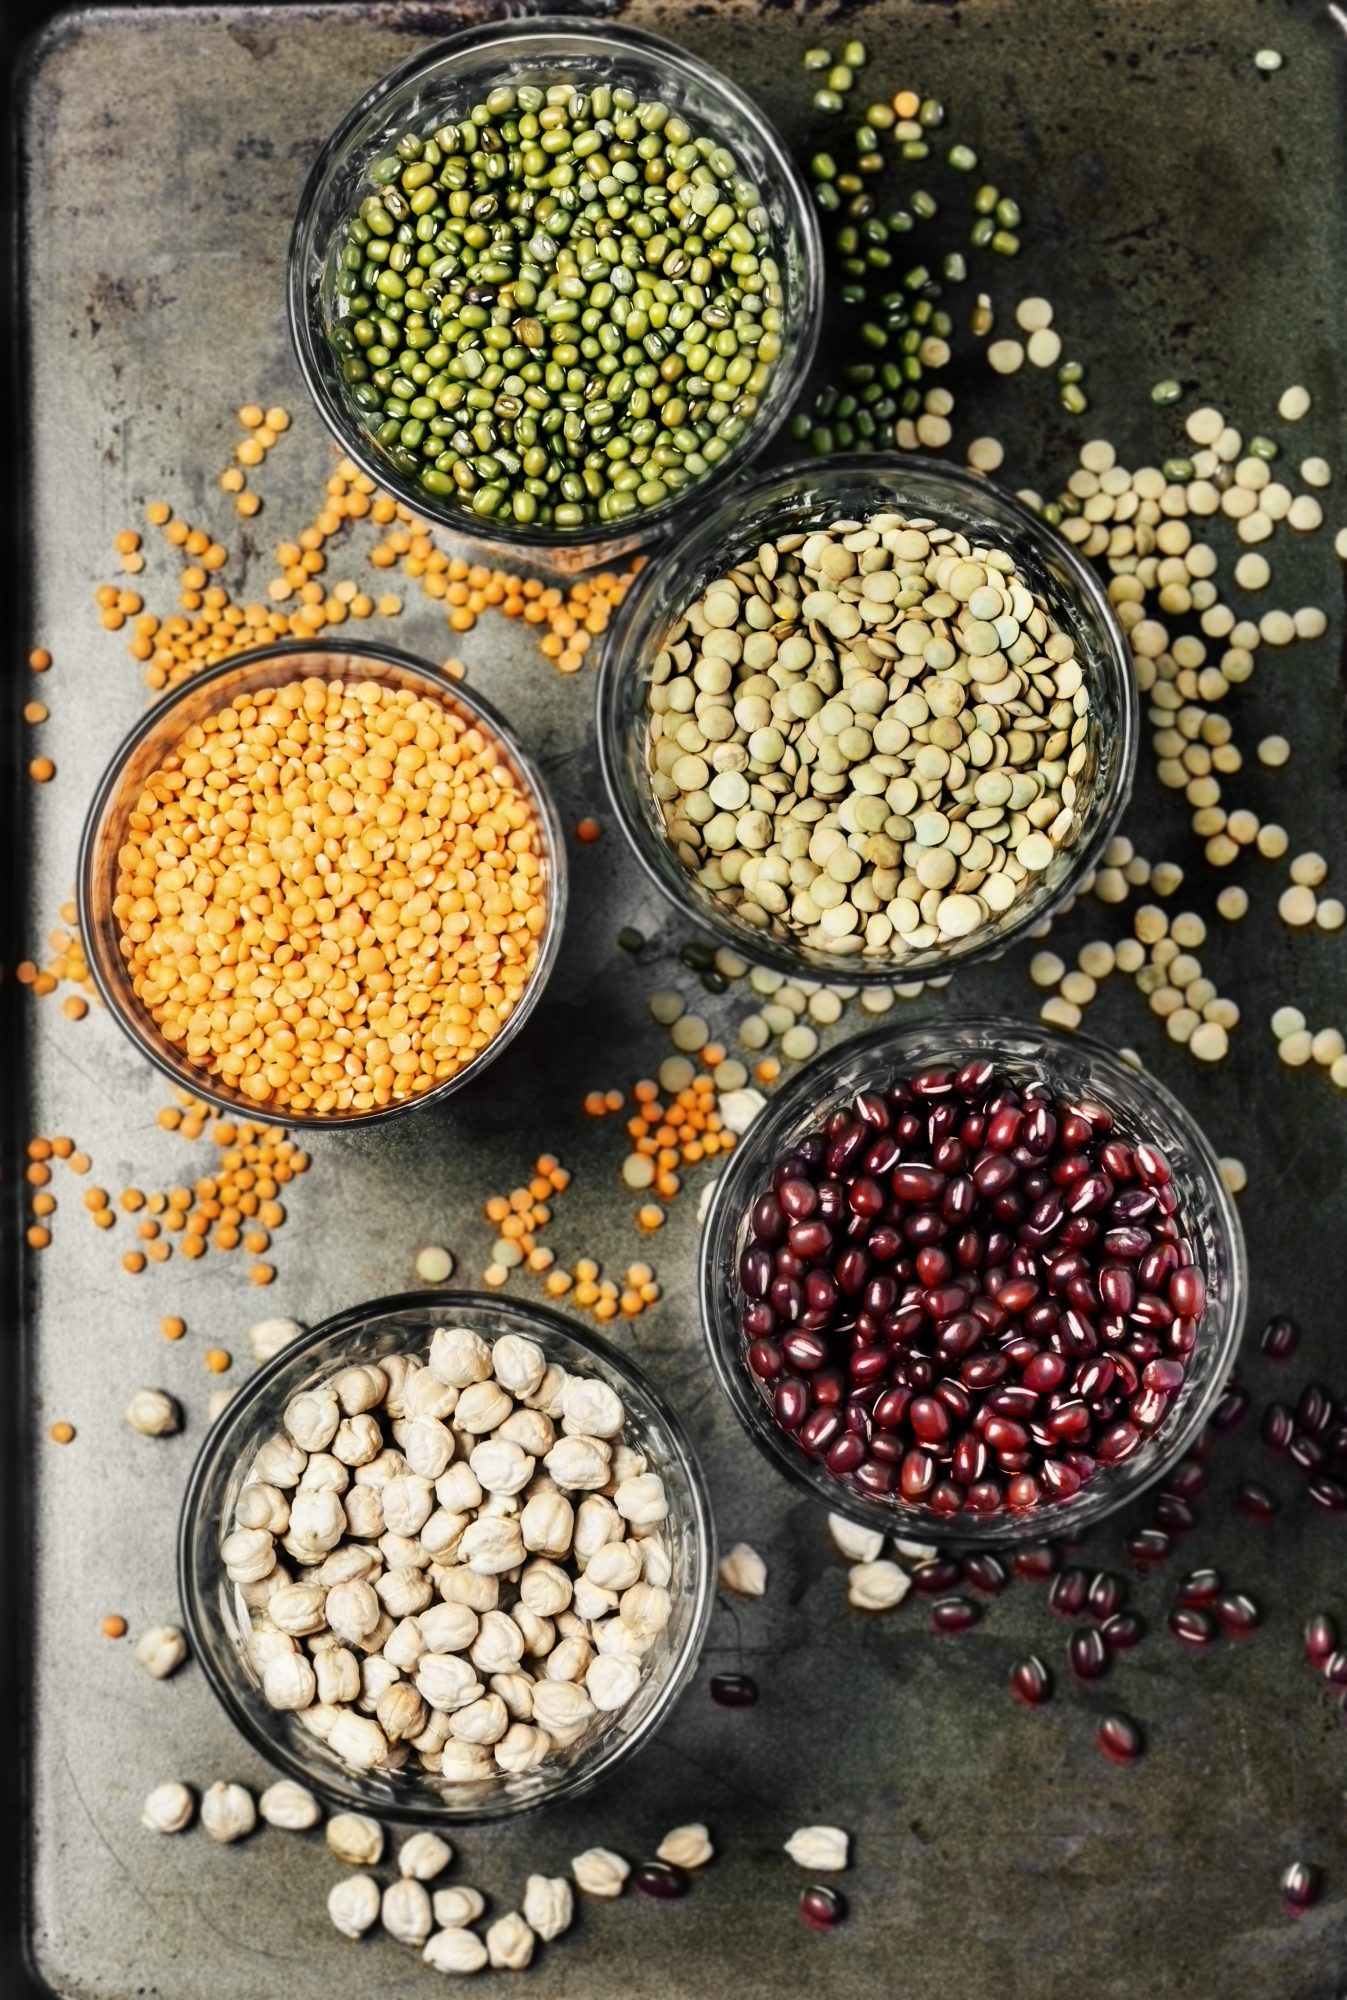 Variety of legumes in glasses on metal background